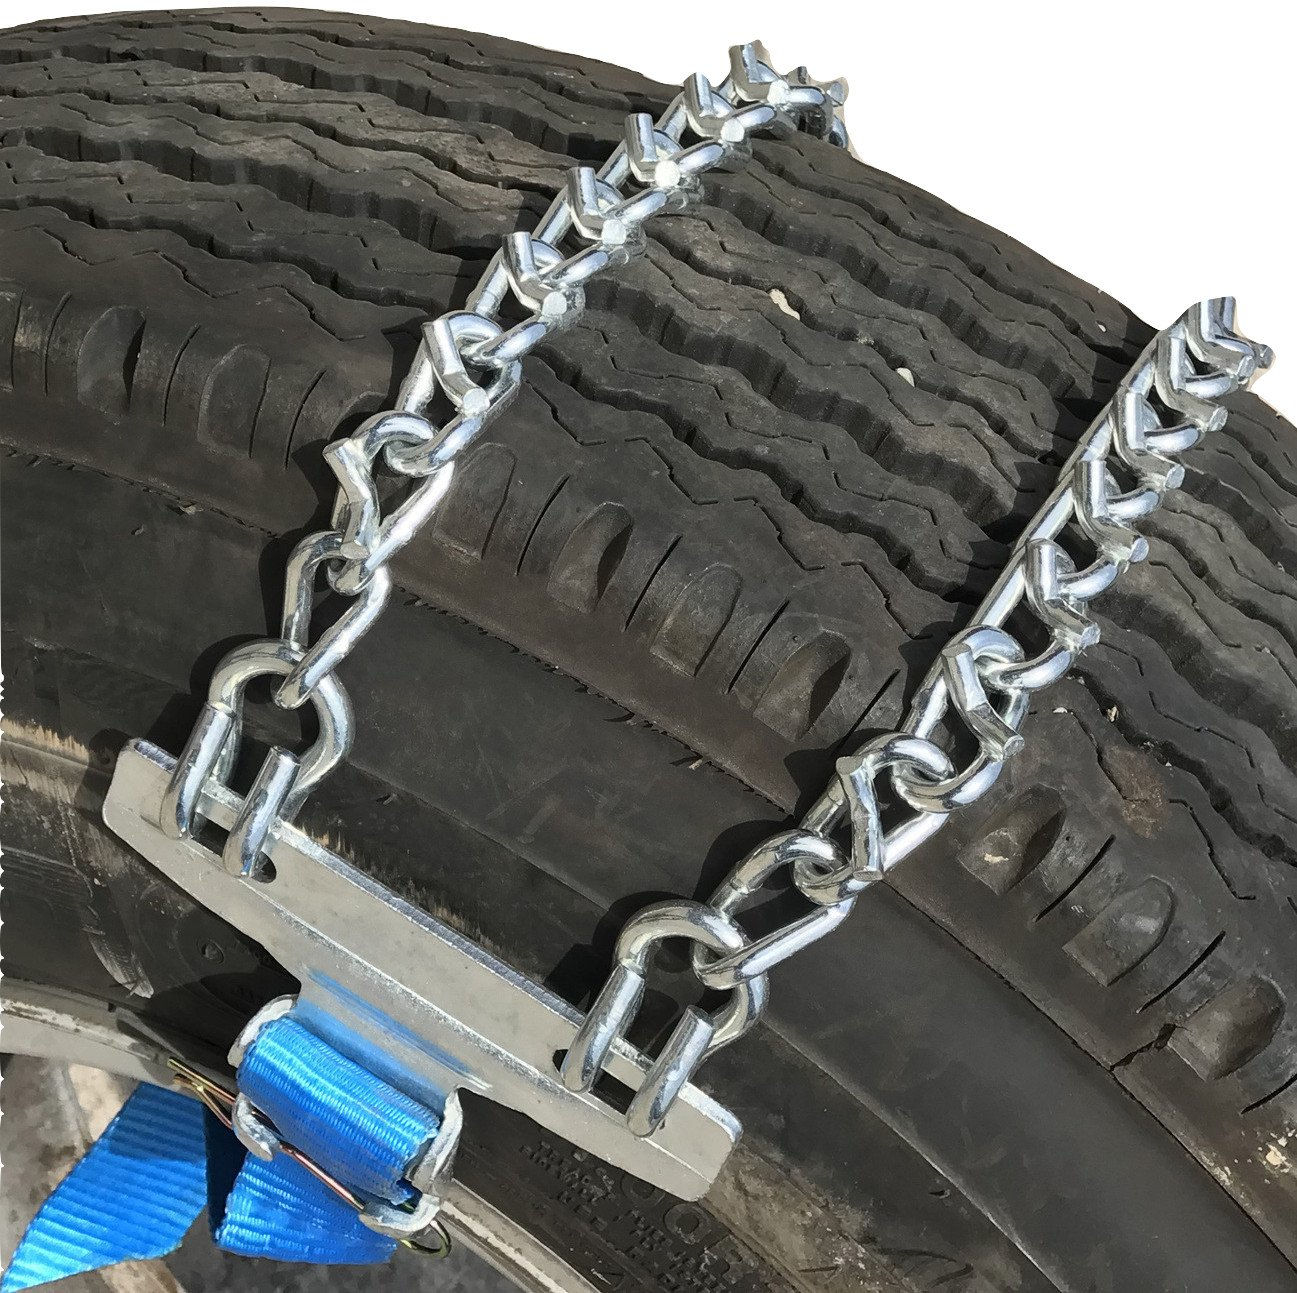 TireChain.com V-Bar Emergency Strap tire chains for Large Trucks - fits tire sizes larger than 275 mm-, priced per pair